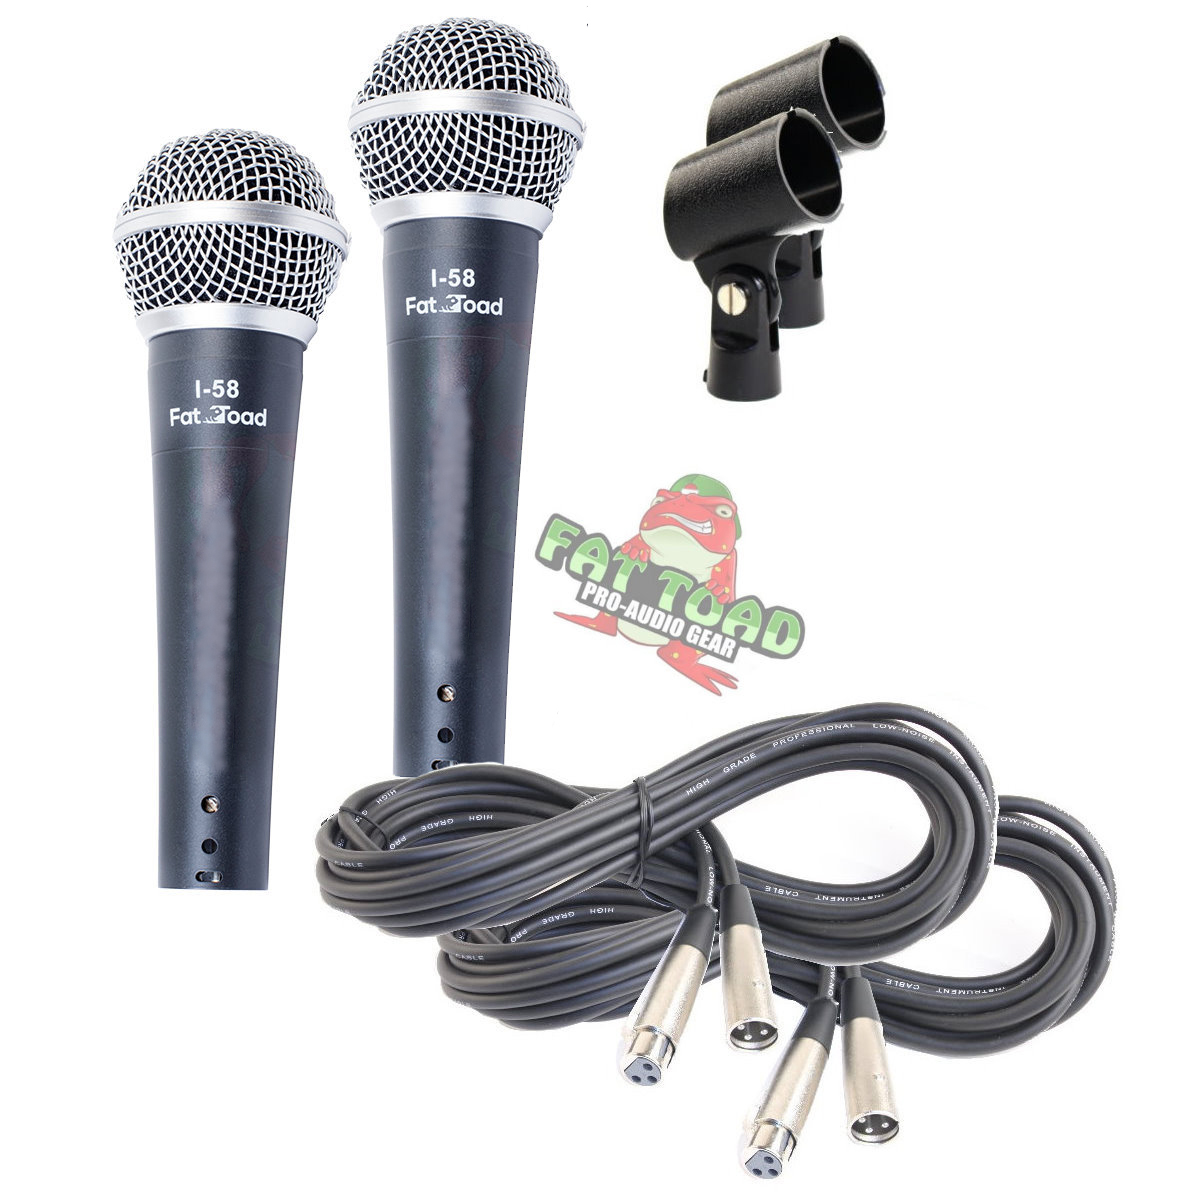 hand held vocal dynamic microphone package with xlr mic cables by fat toad ace division inc. Black Bedroom Furniture Sets. Home Design Ideas